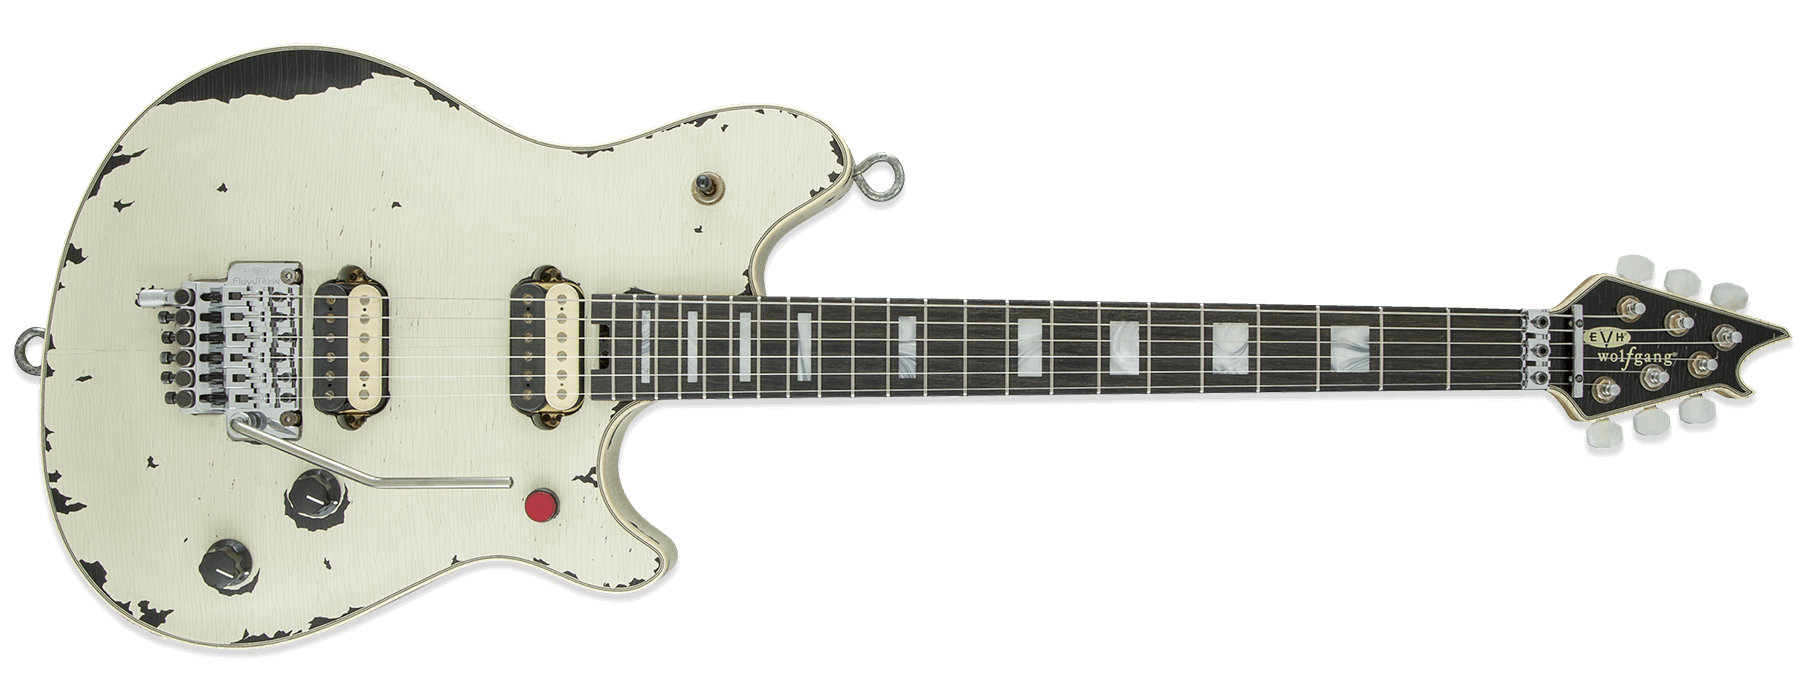 EVH Wolfgang Limited Tour Relic